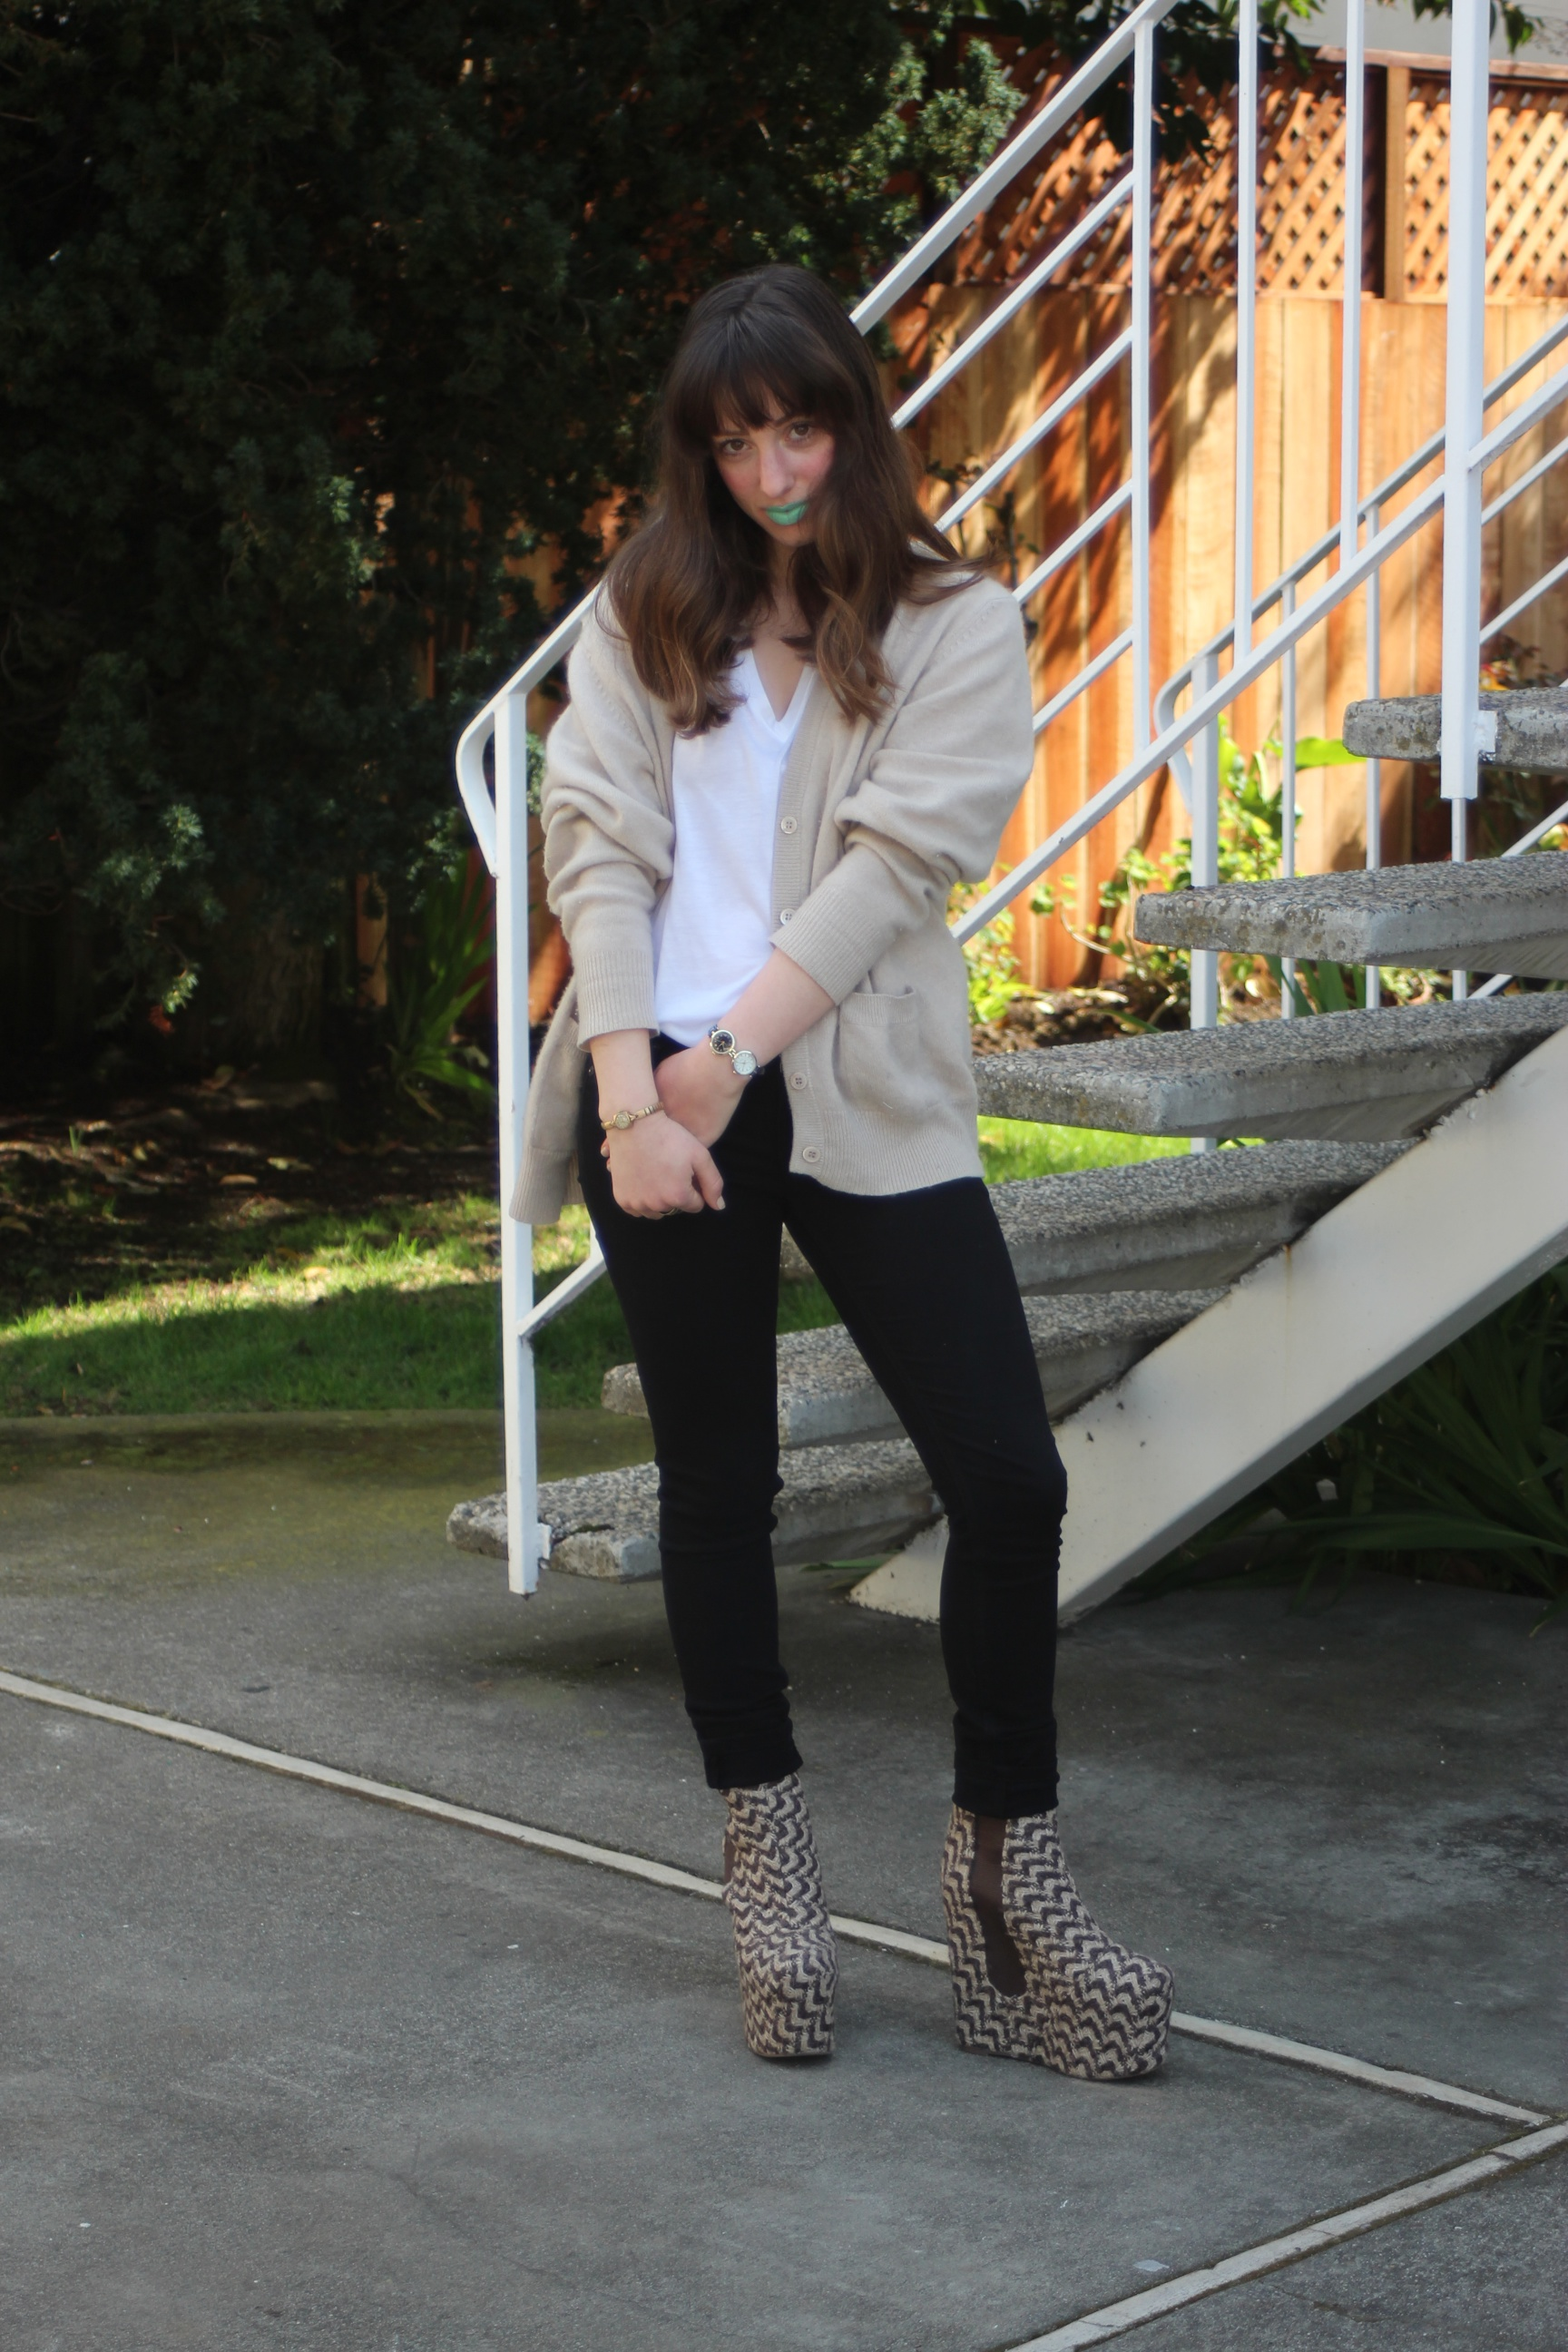 """Sweater: Vintage, T-Shirt: Helmut by Helmut Lang, Jeggings: Rag & Bone, Bolen Fab Platforms: Jeffrey Campbell, Two-Faced Watch: Nordstrom, Lipstick: """"Mint to Be"""" by Lime Crime Makeup, All Other Jewelry: Vintage"""